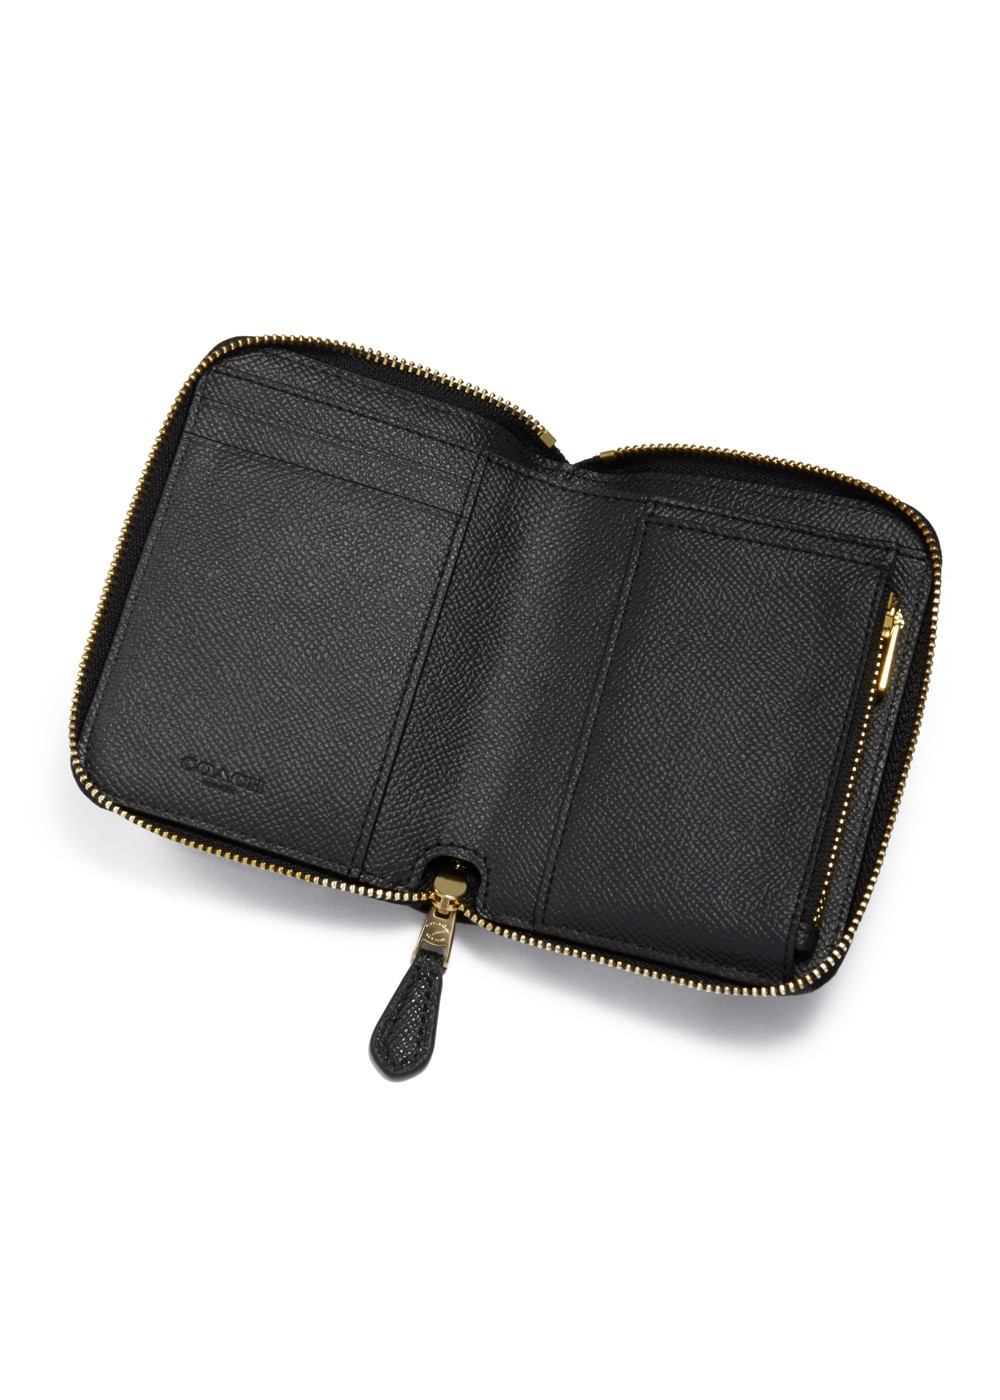 【最大50%OFF】SMALL ZIP AROUND WALLET|LI/BLACK|レディース財布|COACH